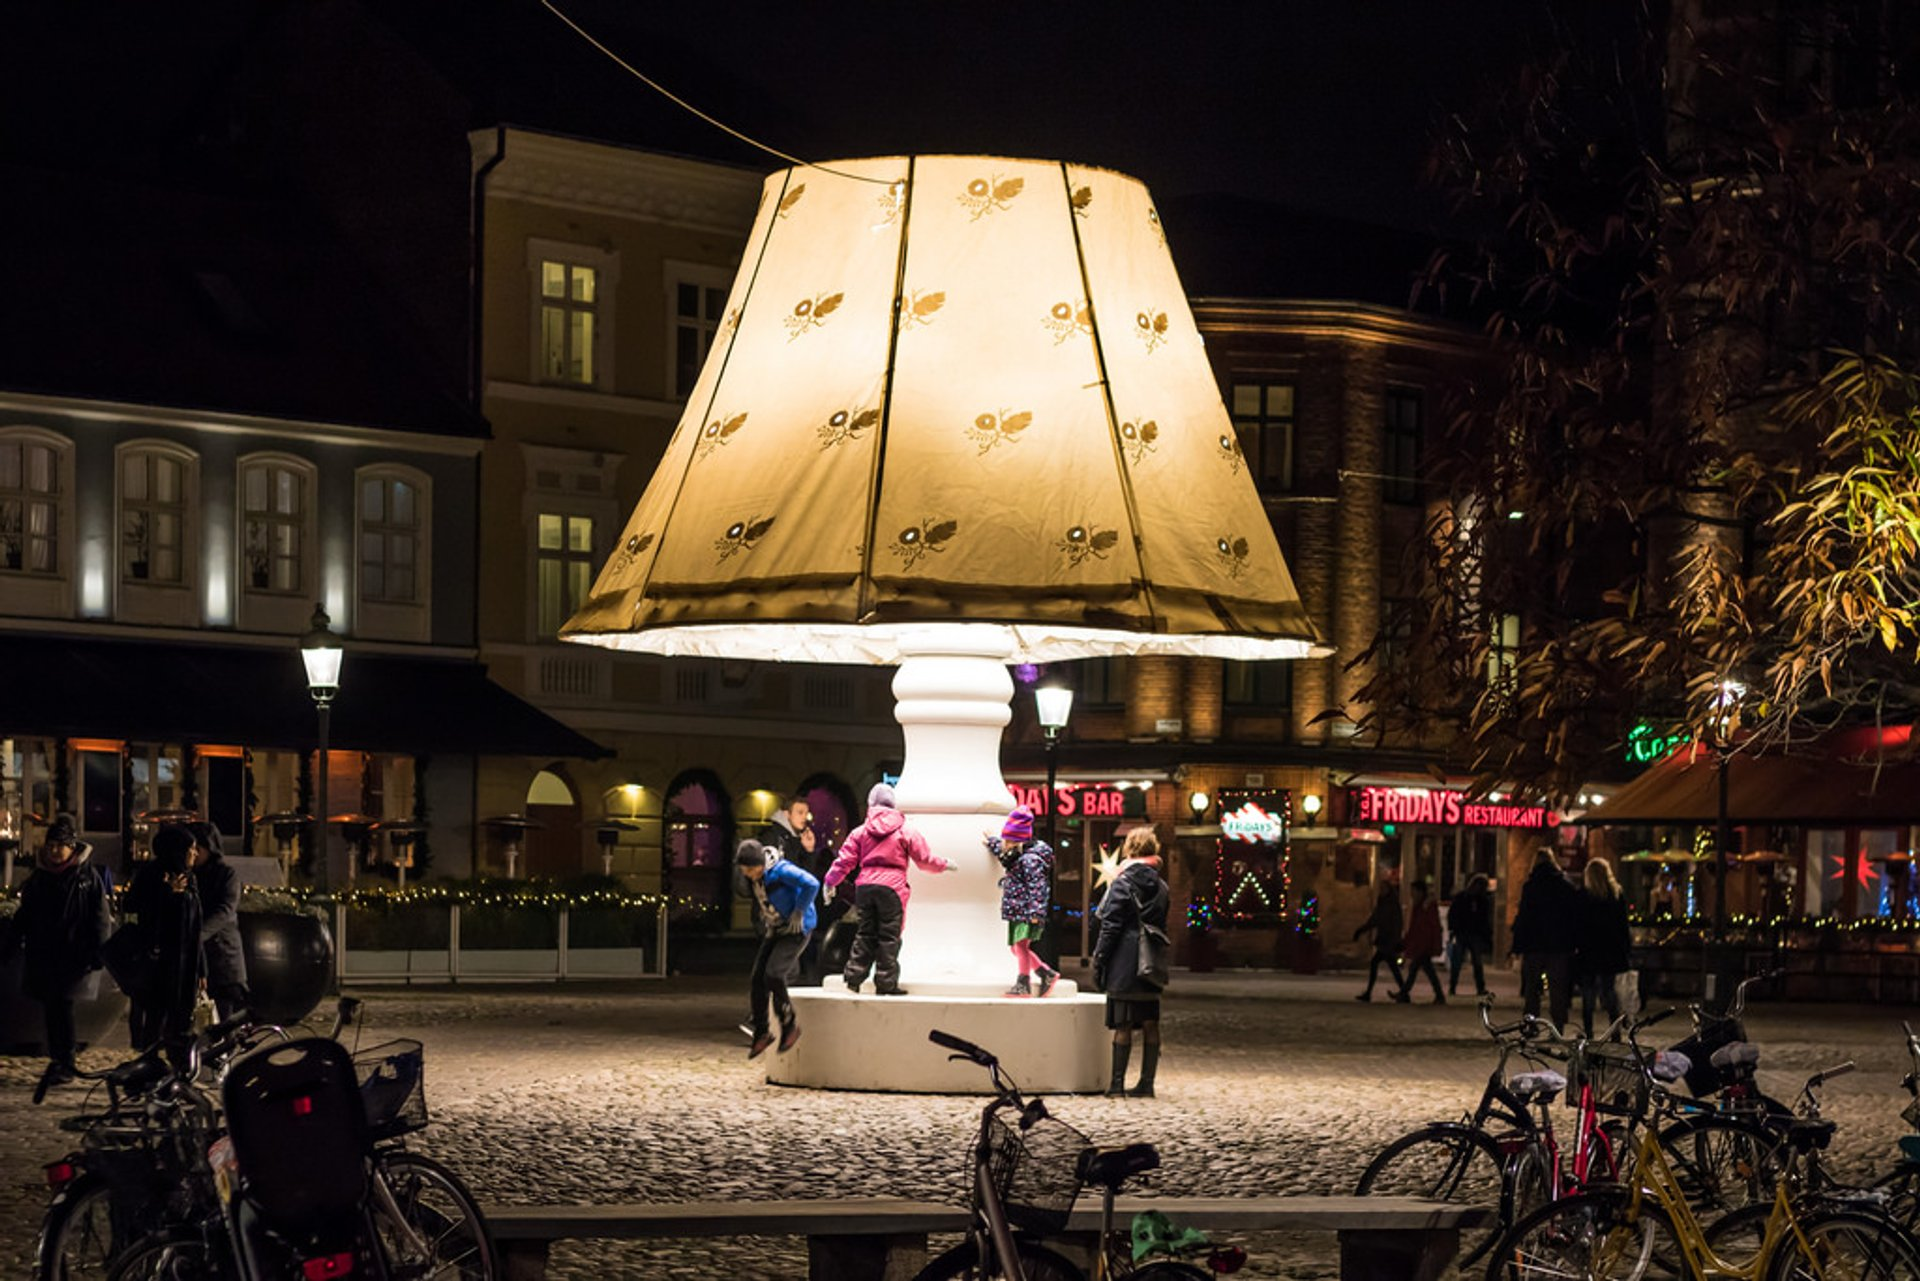 The Talking Christmas Lamp in Sweden 2020 - Best Time